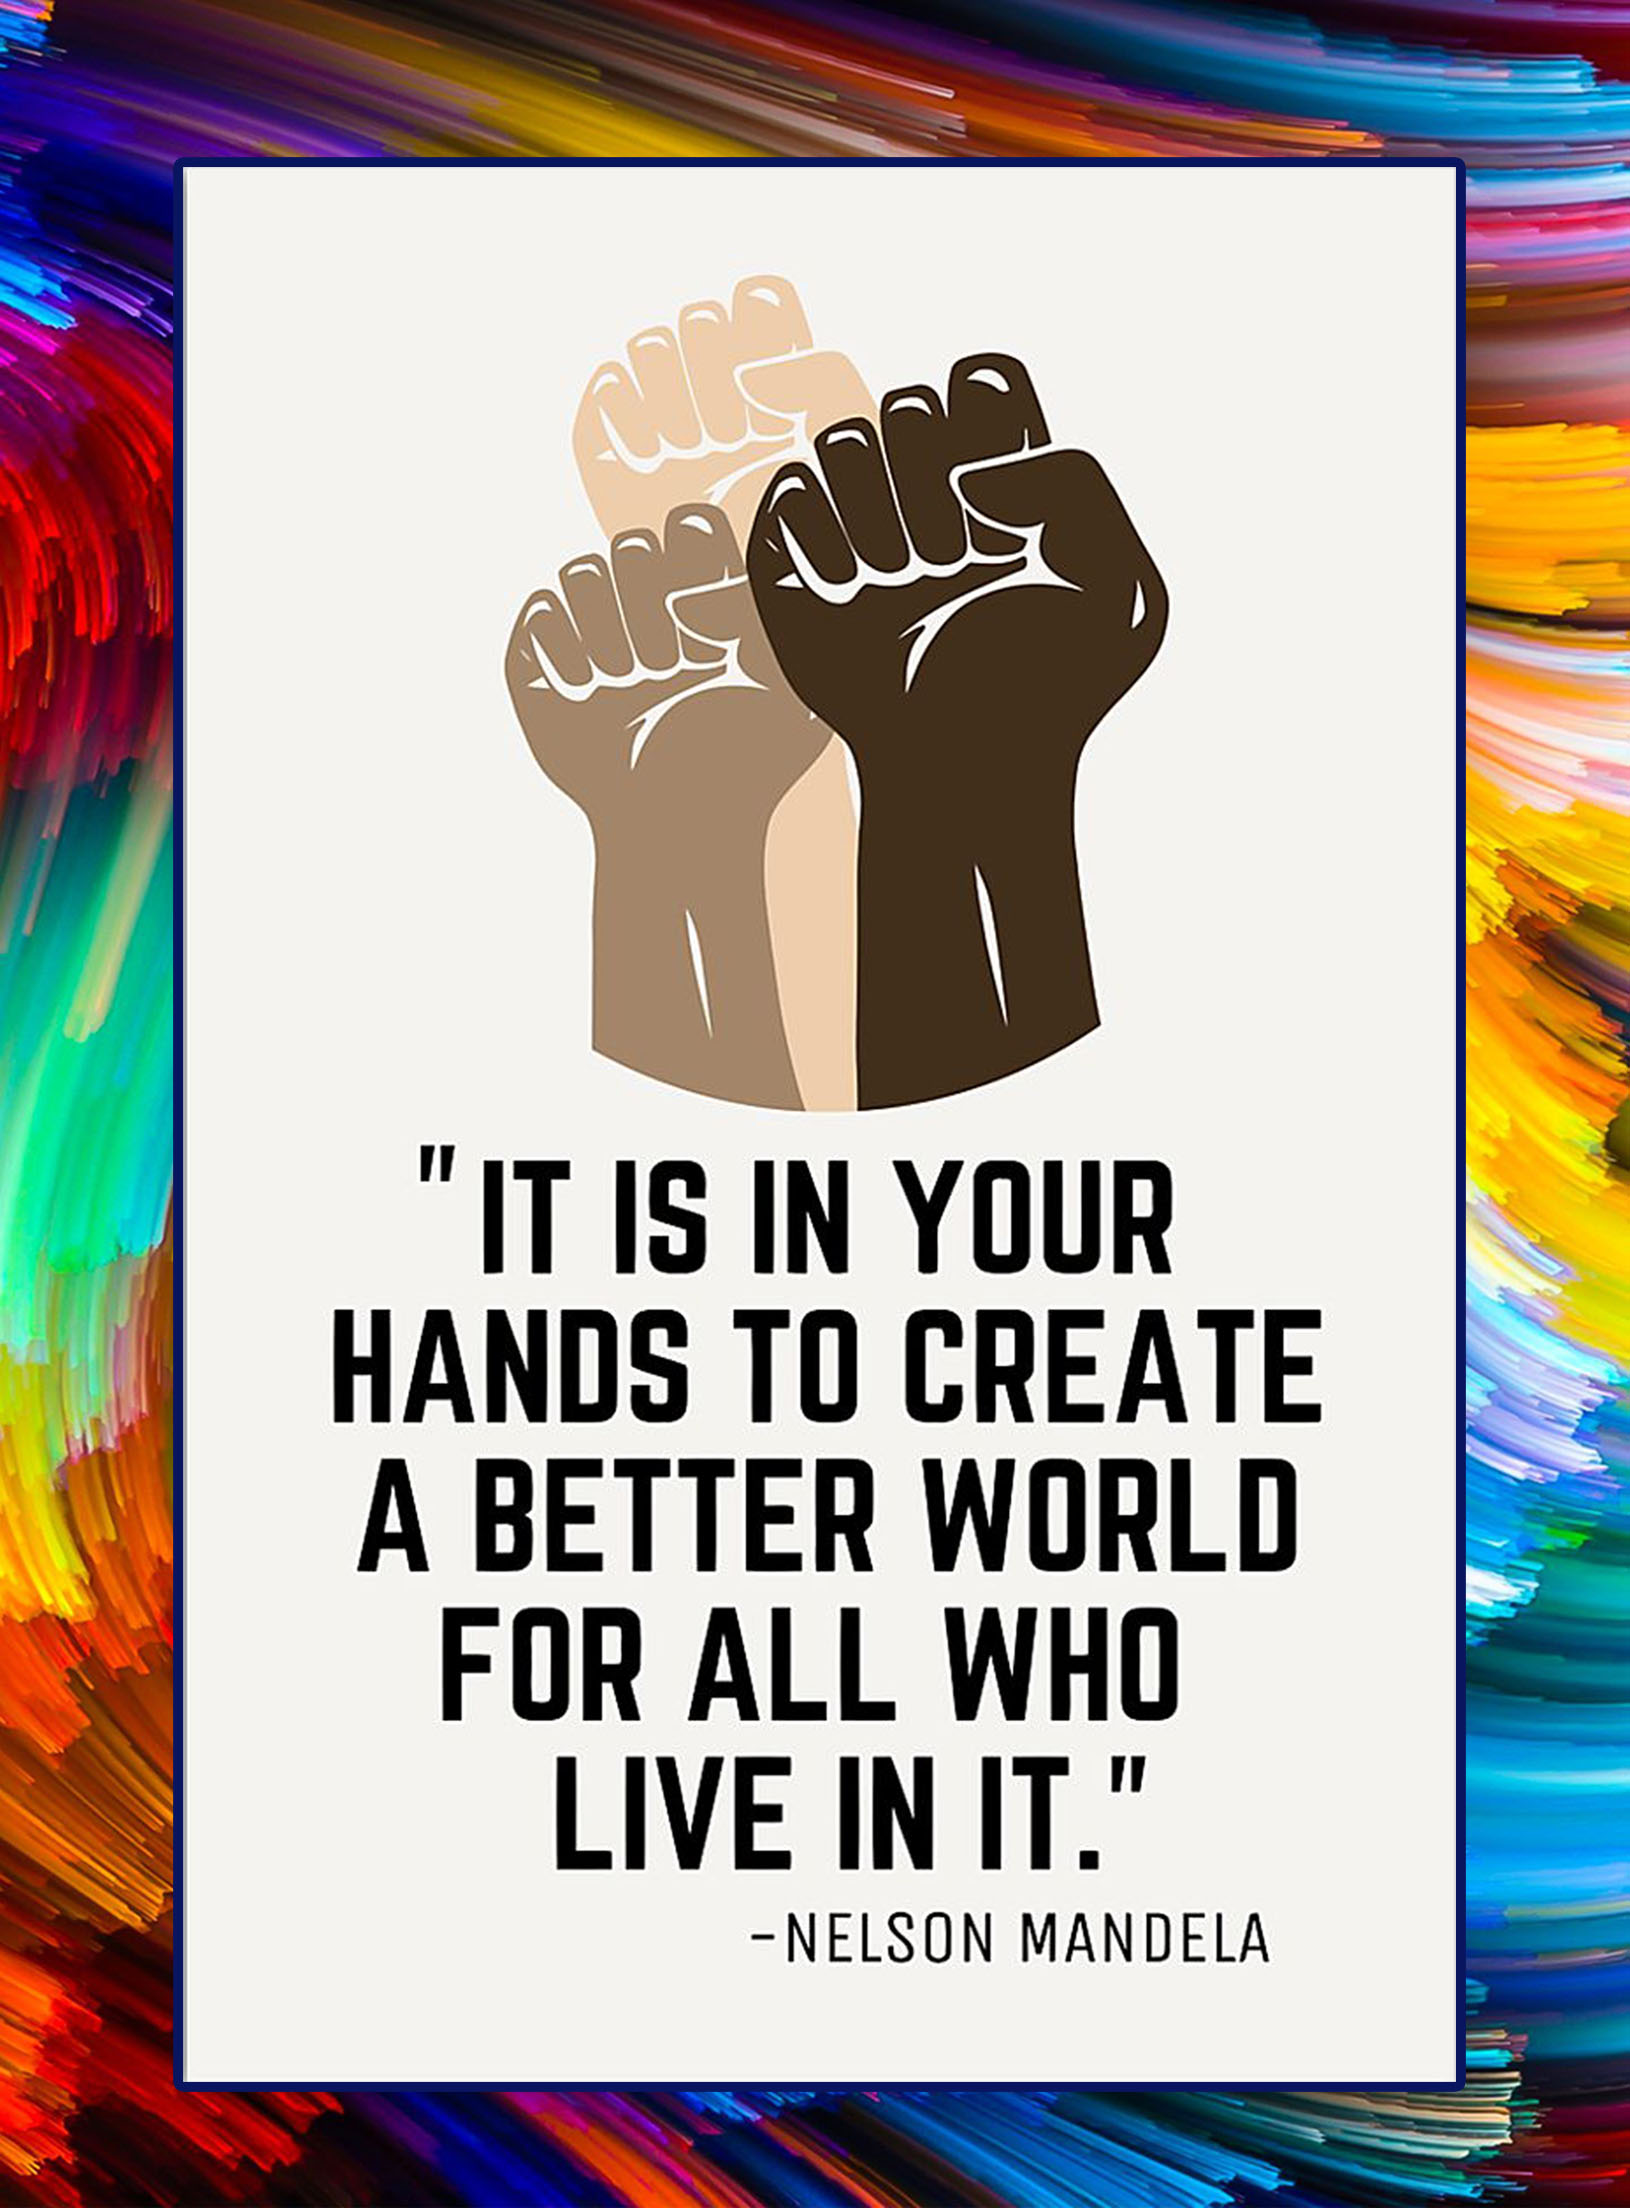 It is in your hands to create a better world for all who live in it nelson mandela poster - A2